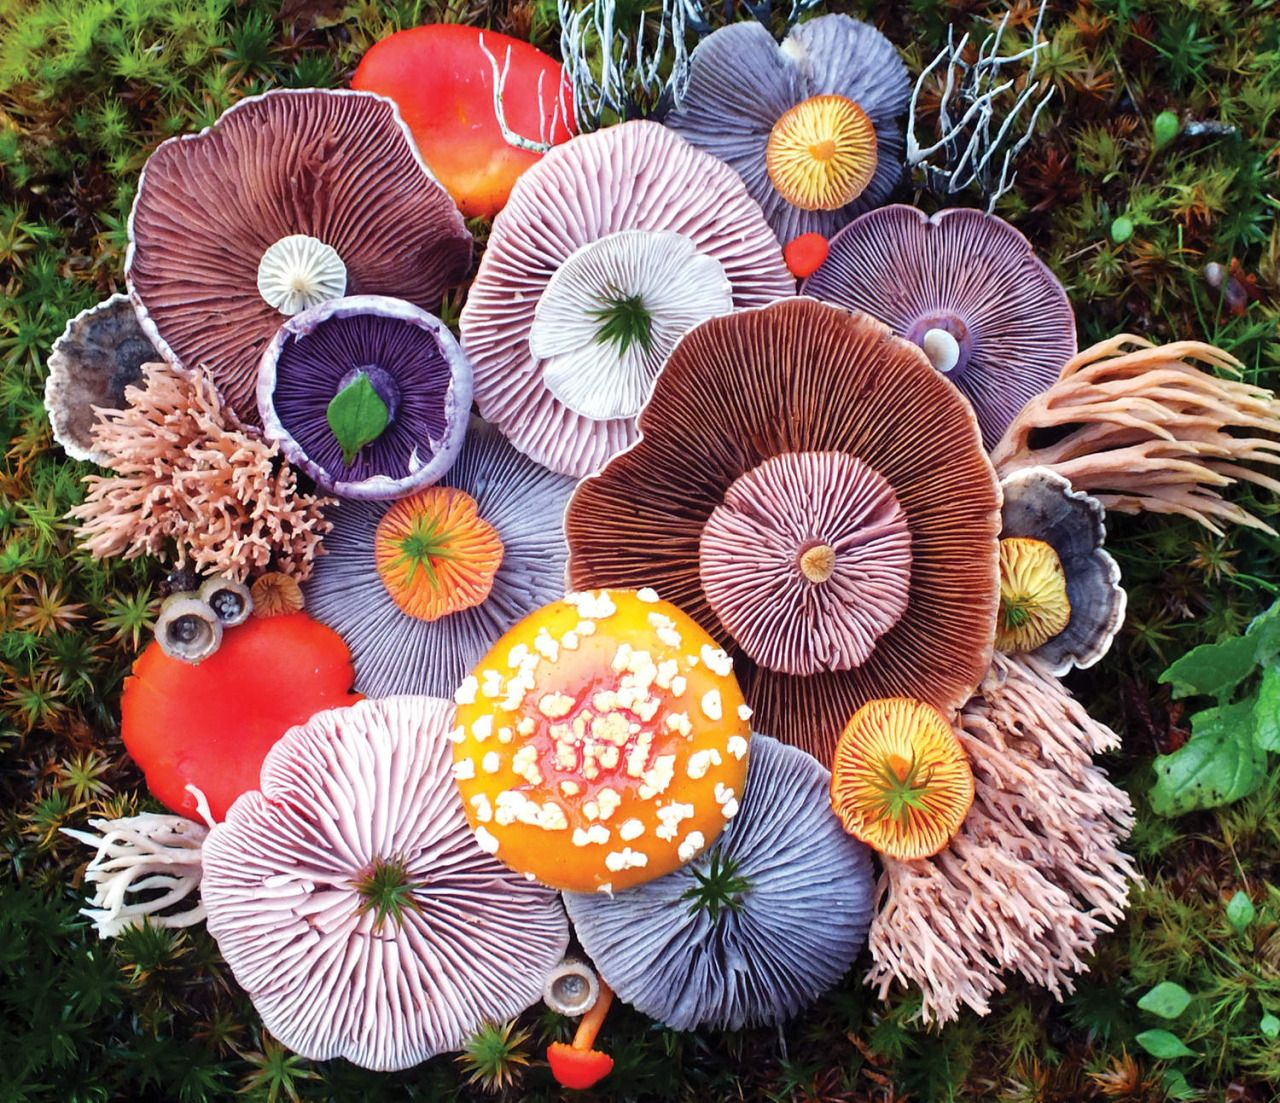 Qué bonito! The Witch Is In • voiceofnature: Mushroom landart by Jill Bliss